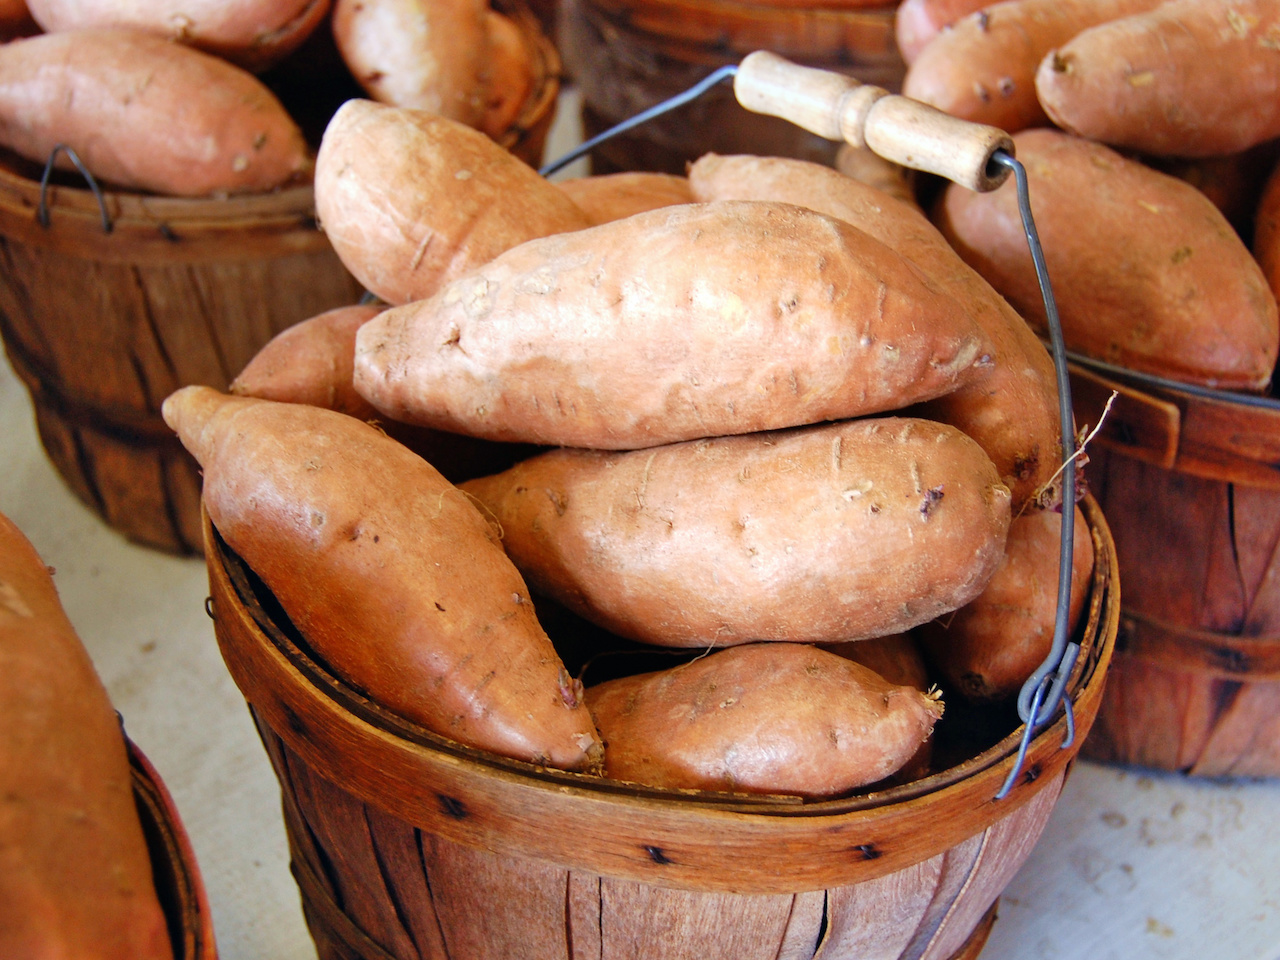 A cute little barrel of sweet potatoes at the Alabama Farmers Market